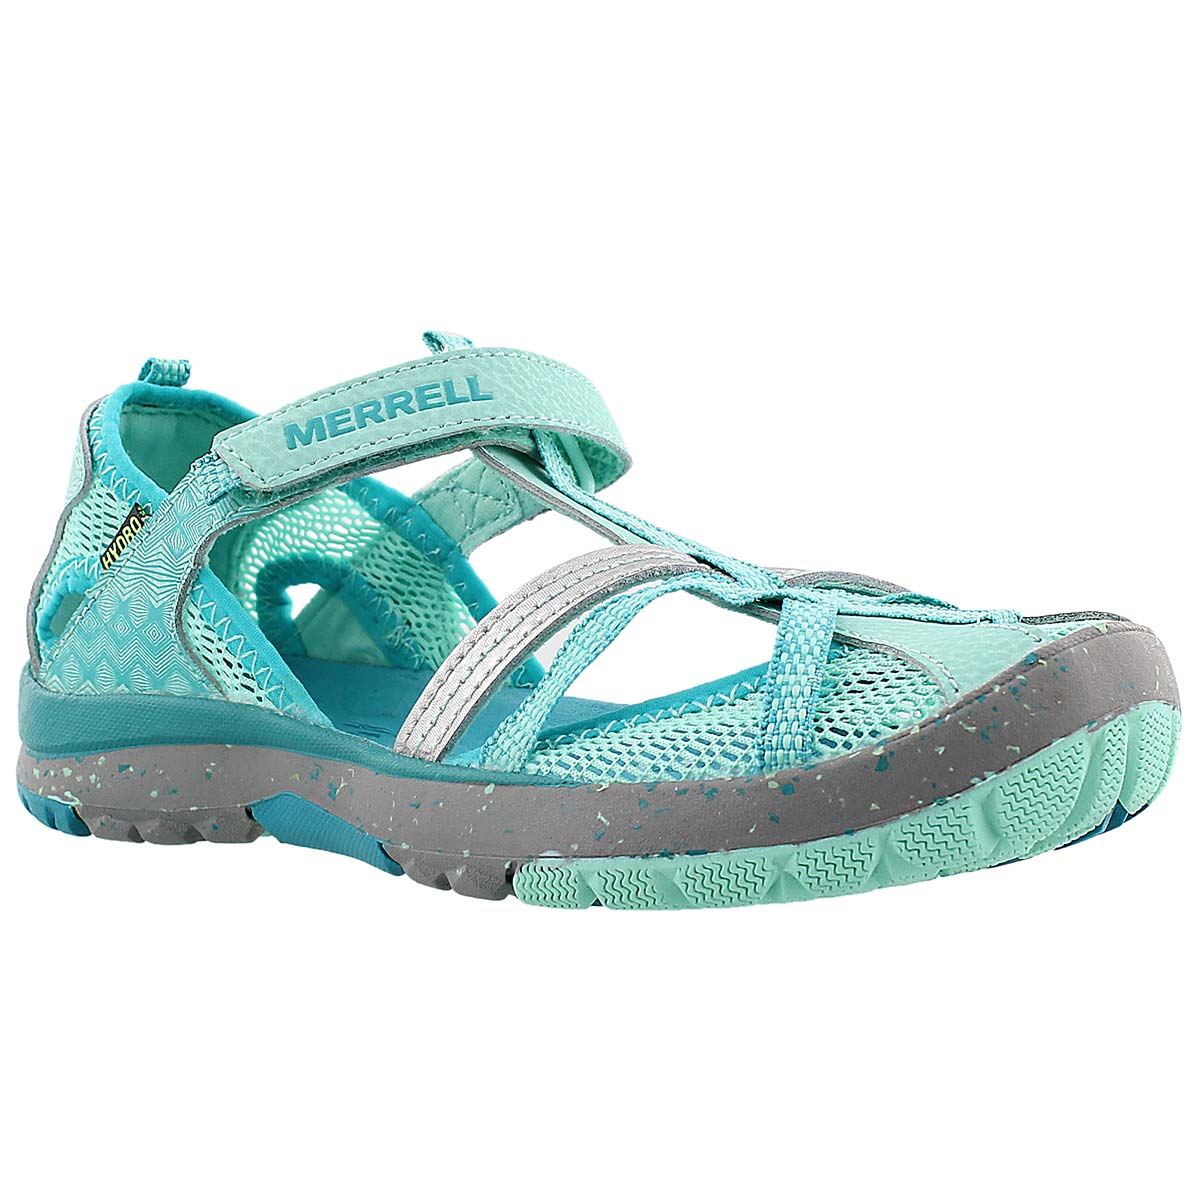 Girls' HYDRO MONARCH turquoise fisherman sandals